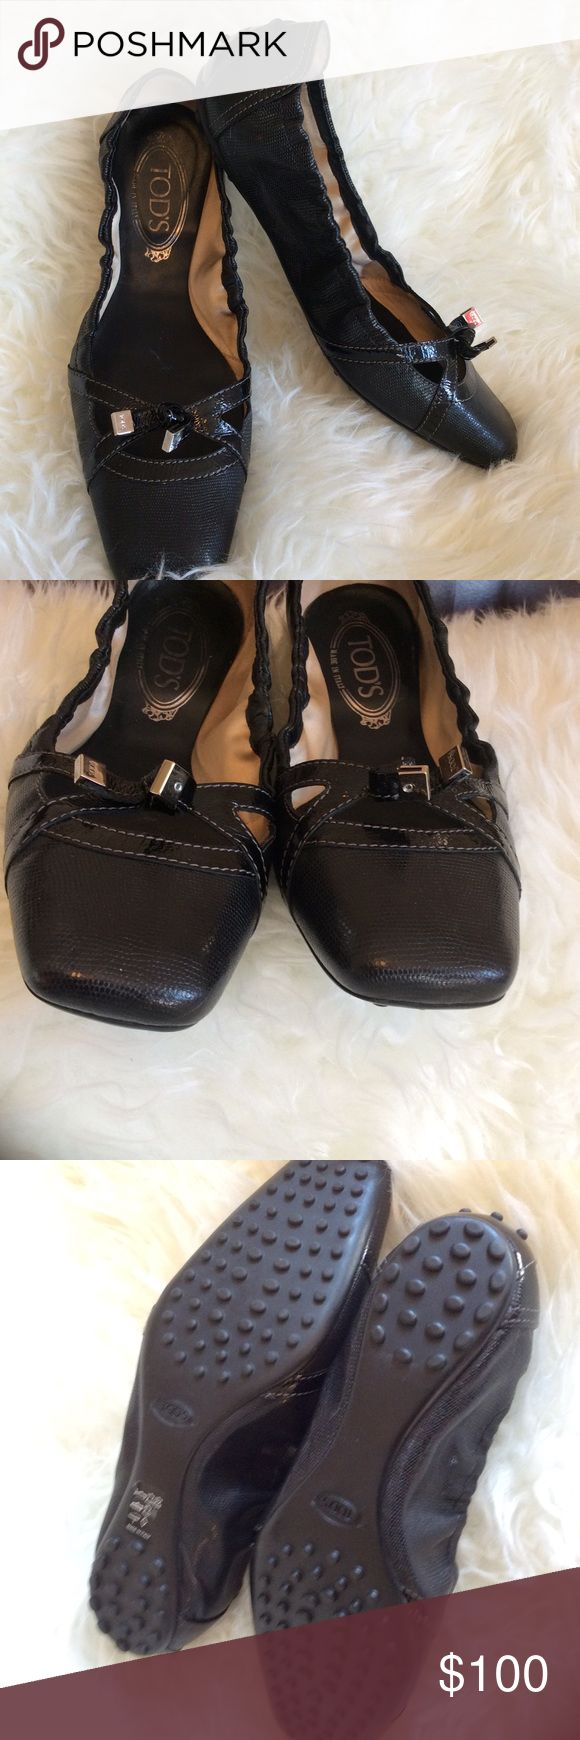 Sz 9.5 Tod's Black Ballet Flats EUC driving shoes EUC beautiful Tod's ballerina flats in black. Wore twice.  Very light wear inside shoe logo. See photo. Tod's Shoes